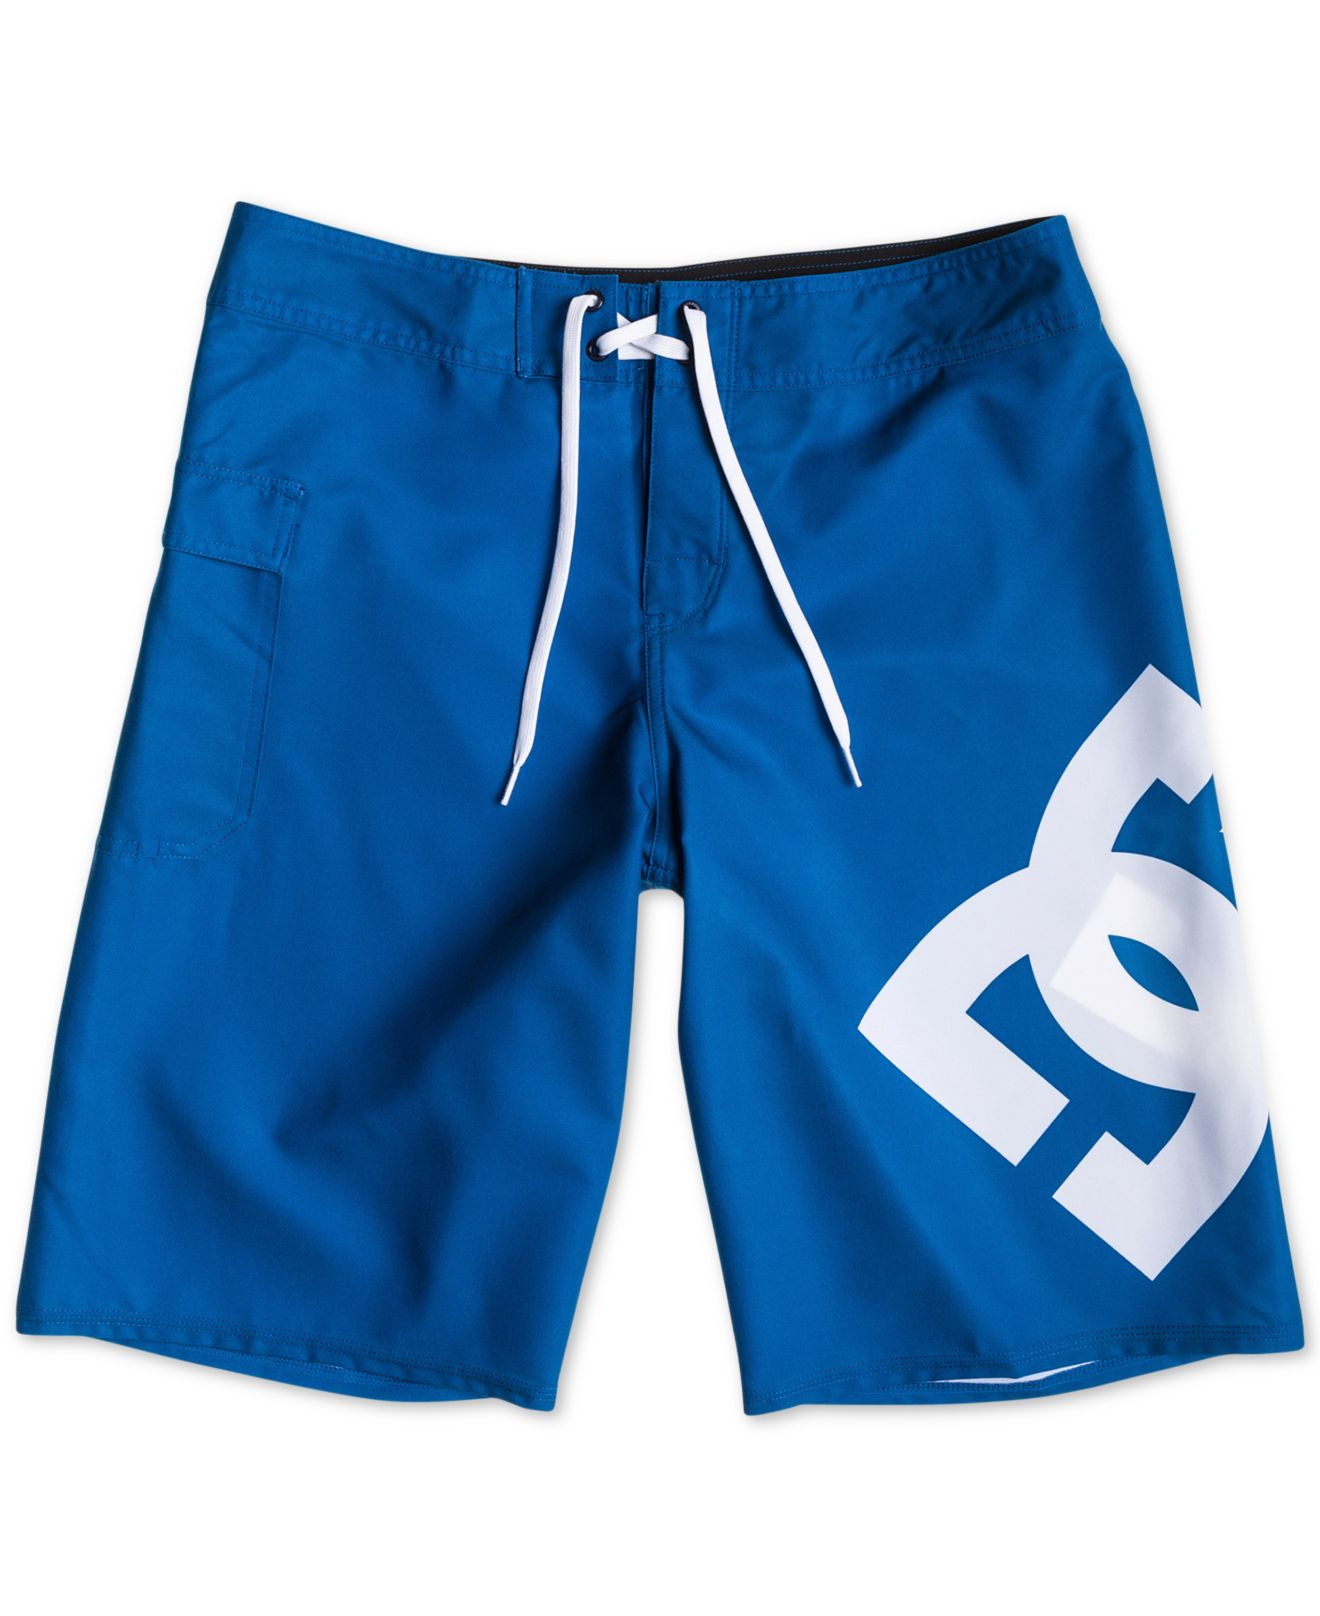 cef7a998f5 Lyst - DC Shoes Lanai 22 Board Shorts in Blue for Men